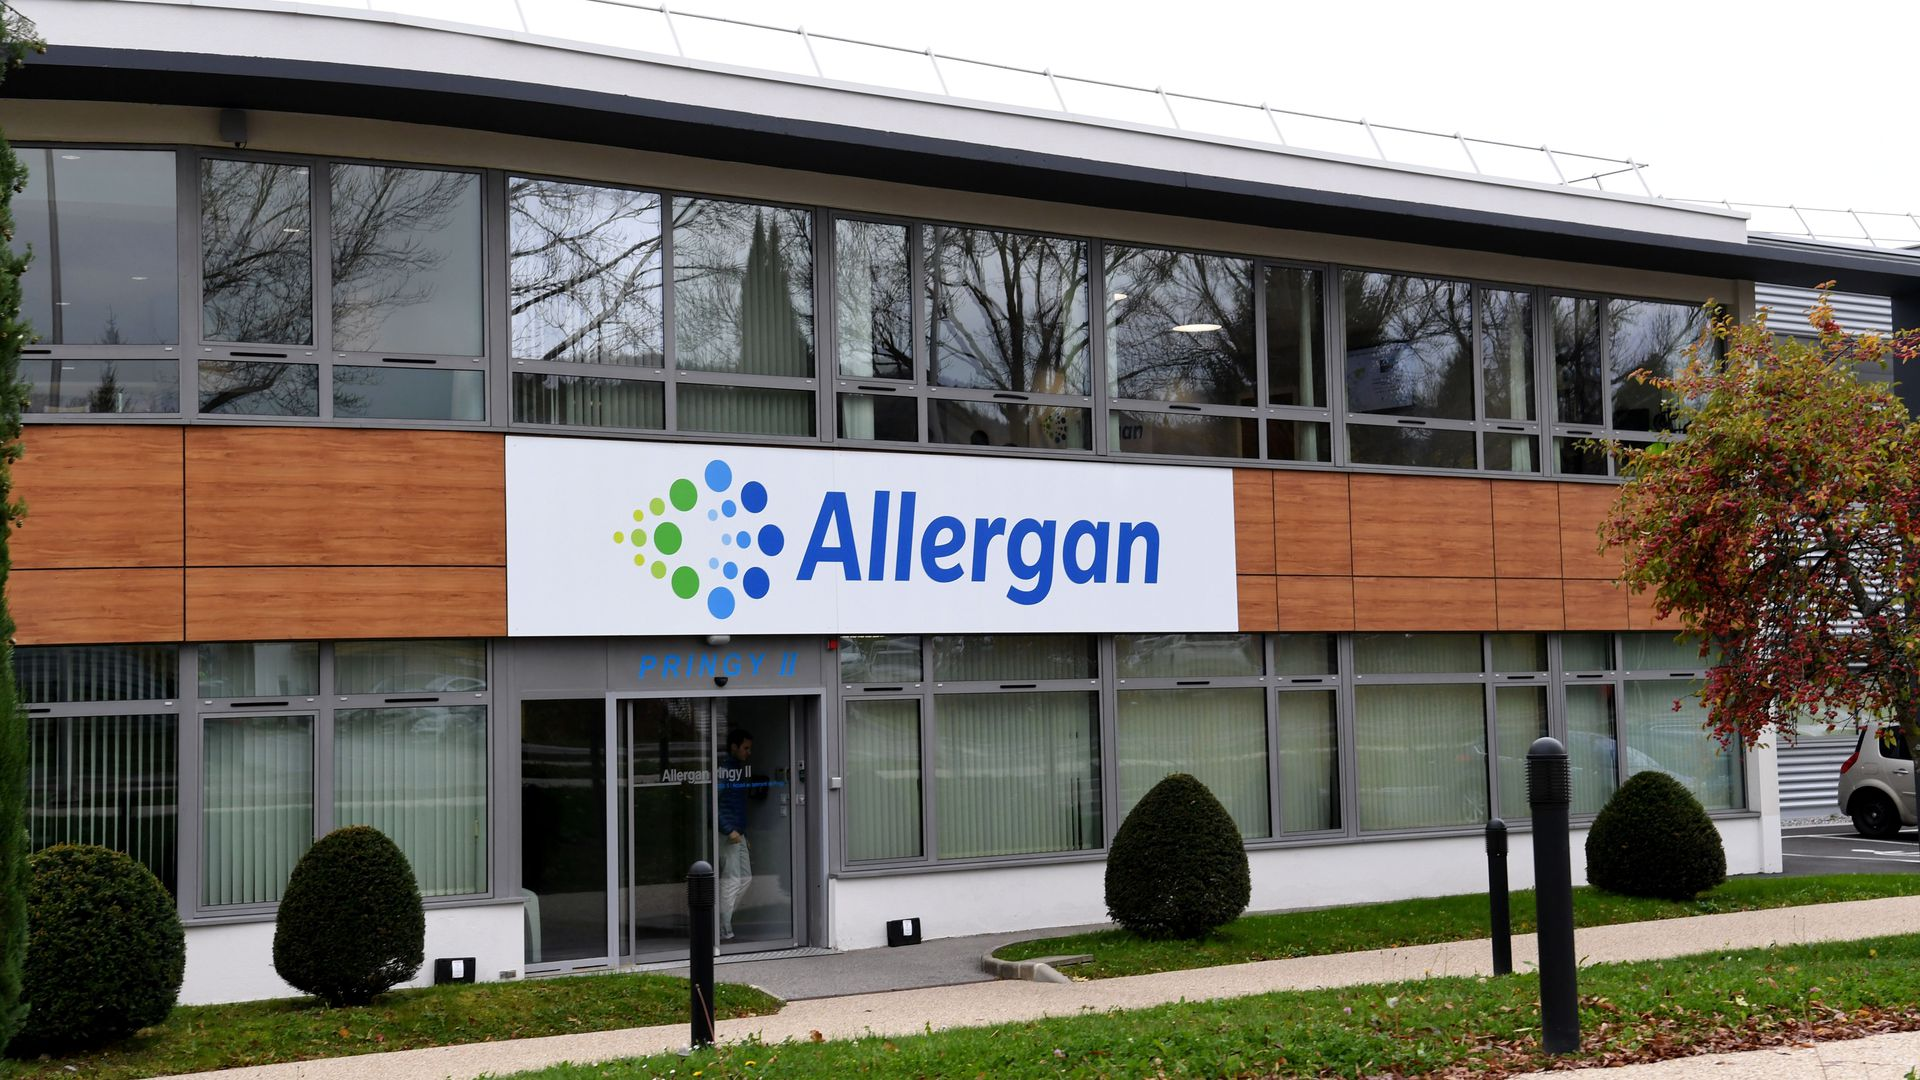 An Allergan building in France.